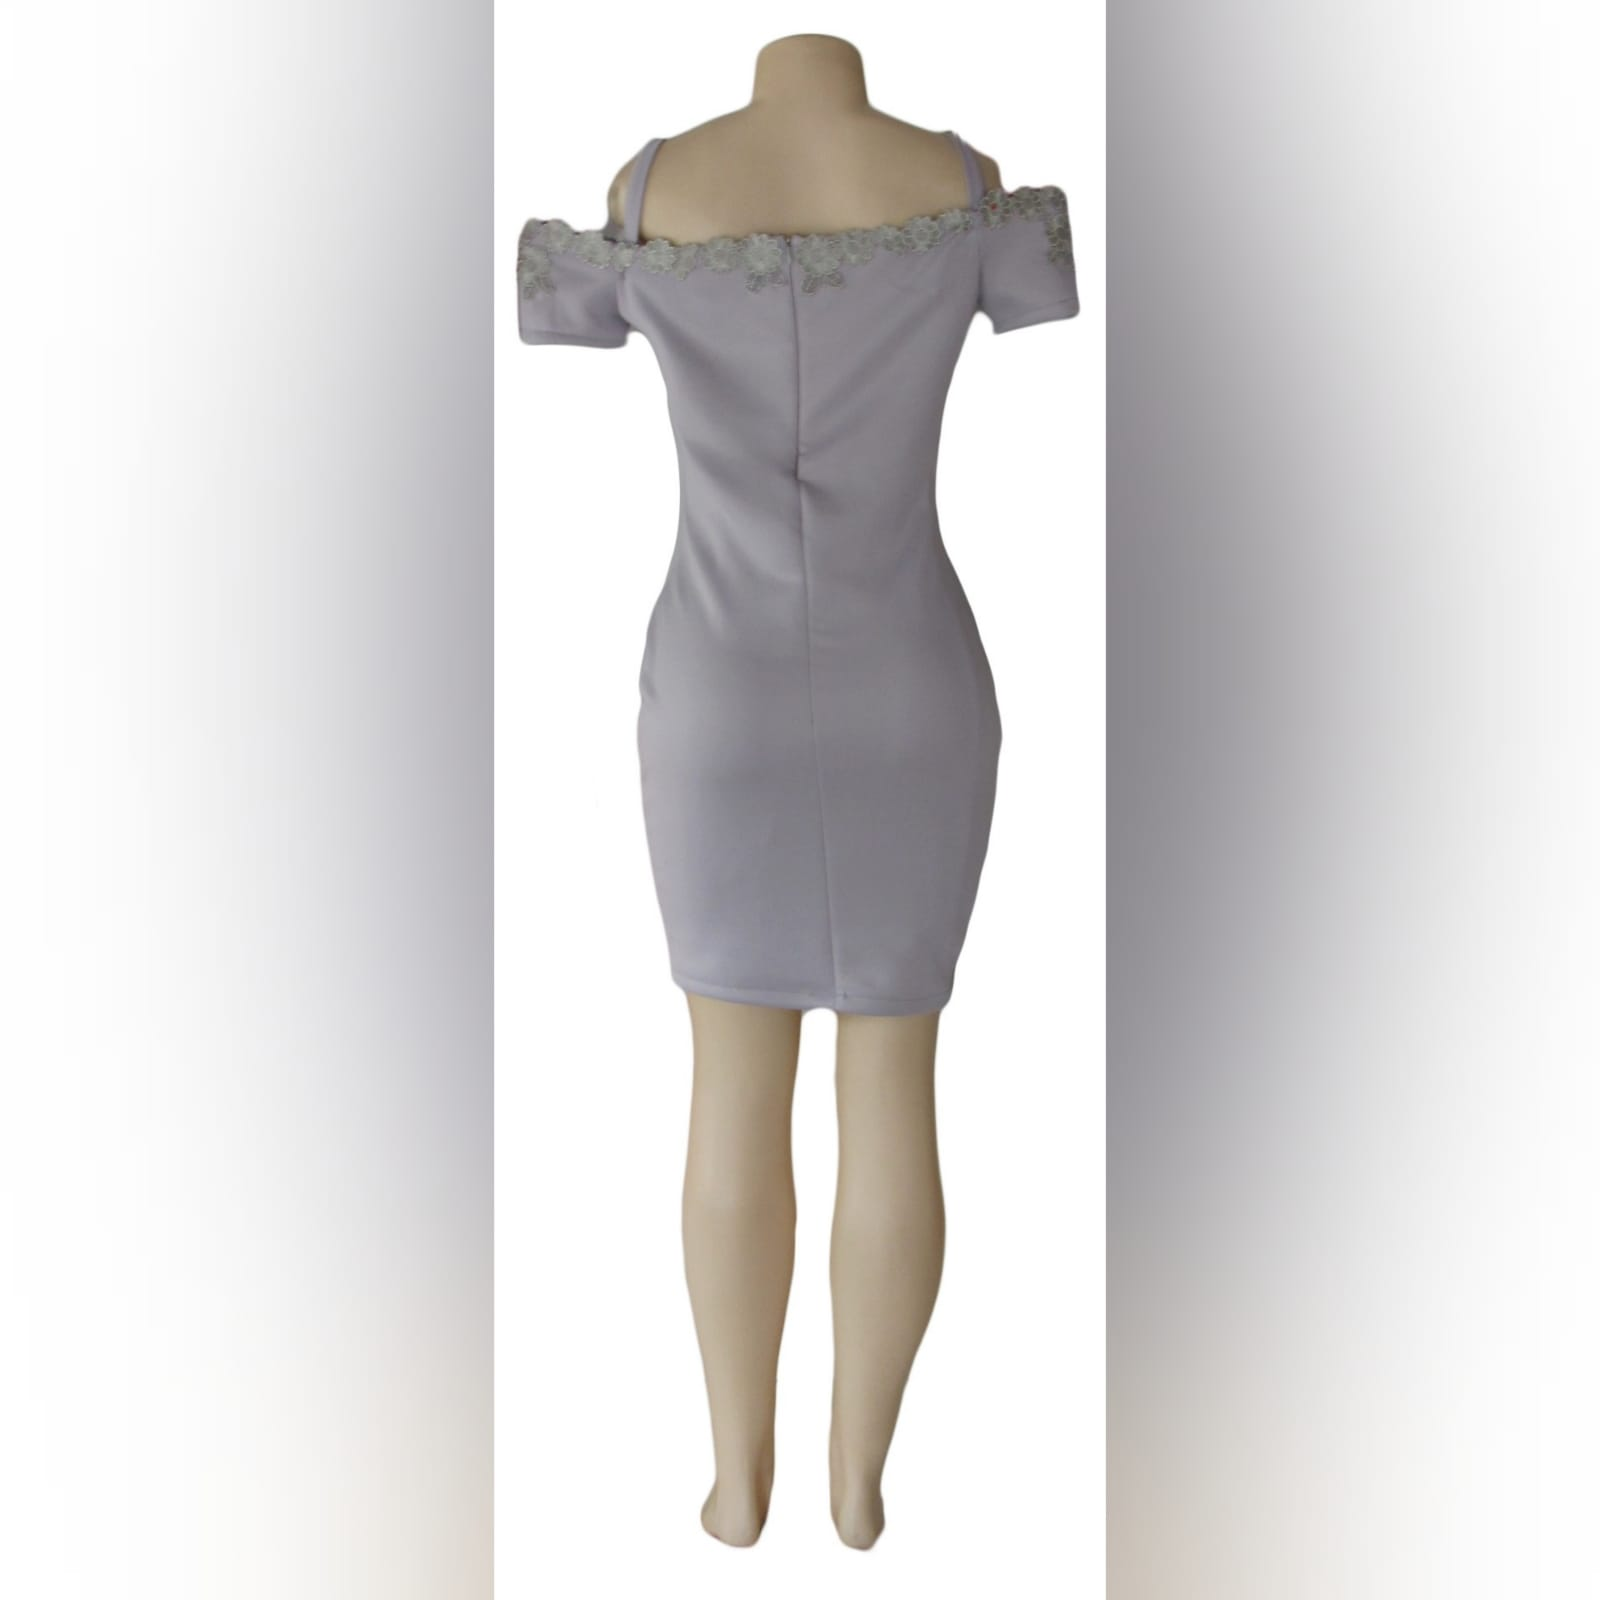 Light grey short fitted smart casual dress 2 light grey short fitted smart casual dress, with off shoulder shorter sleeves and shoulder straps. Neckline detailed with silver lace.